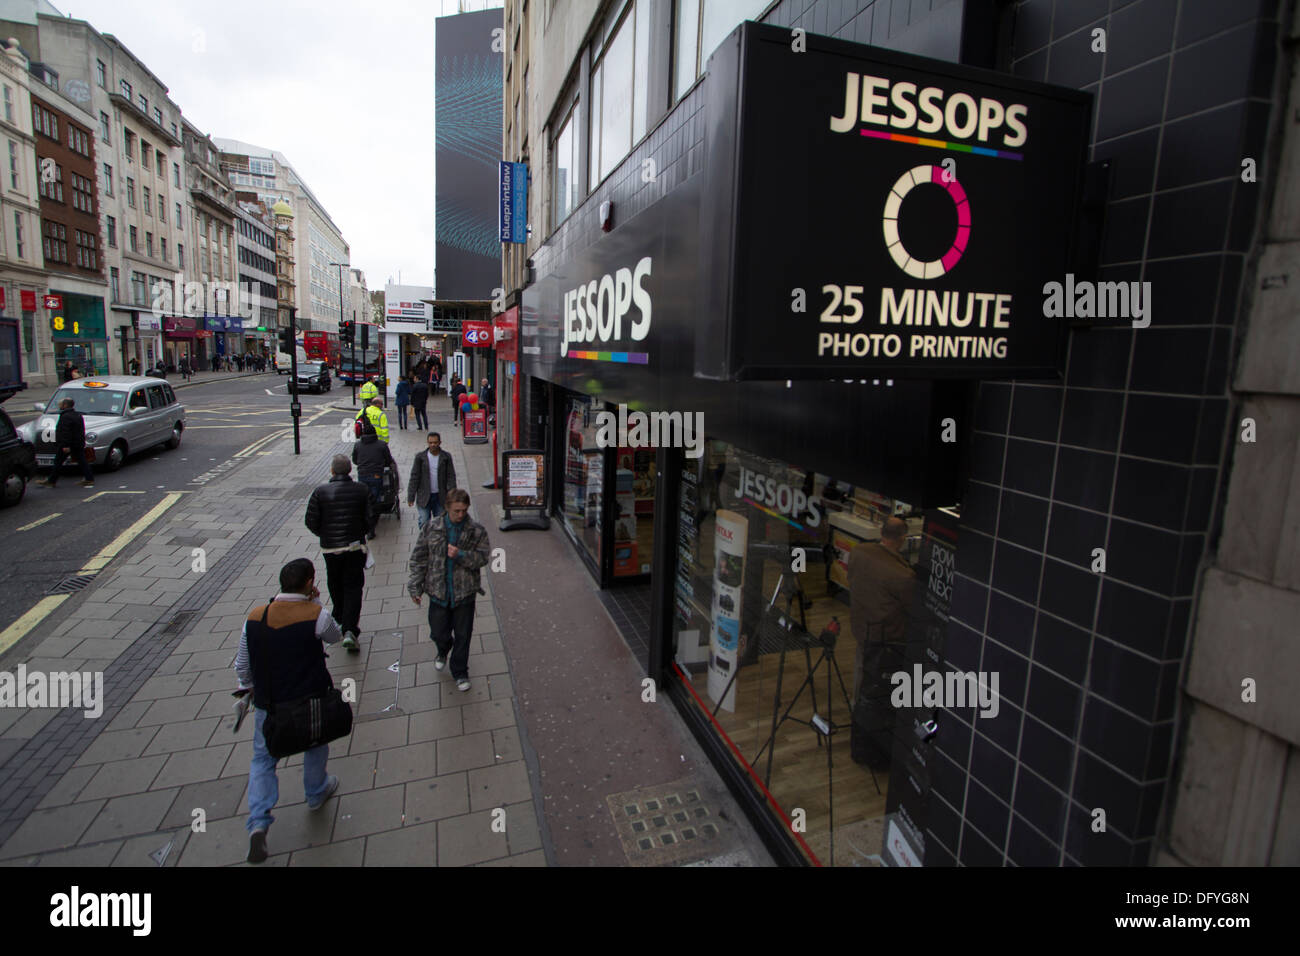 Jessops photographic outlet Oxford Street London - Stock Image